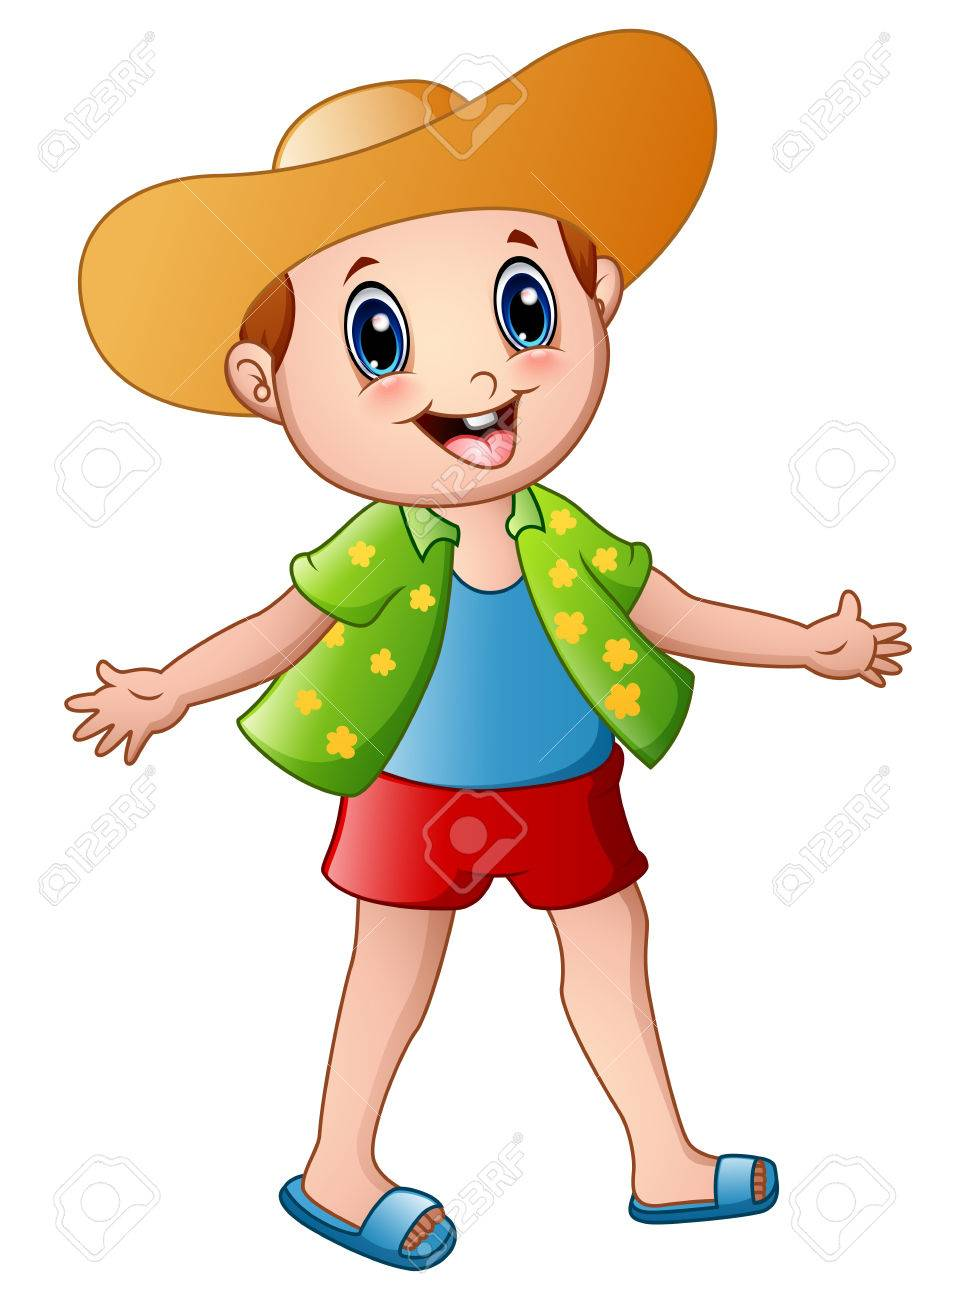 Happy boy cartoon with summer clothes and a hat.